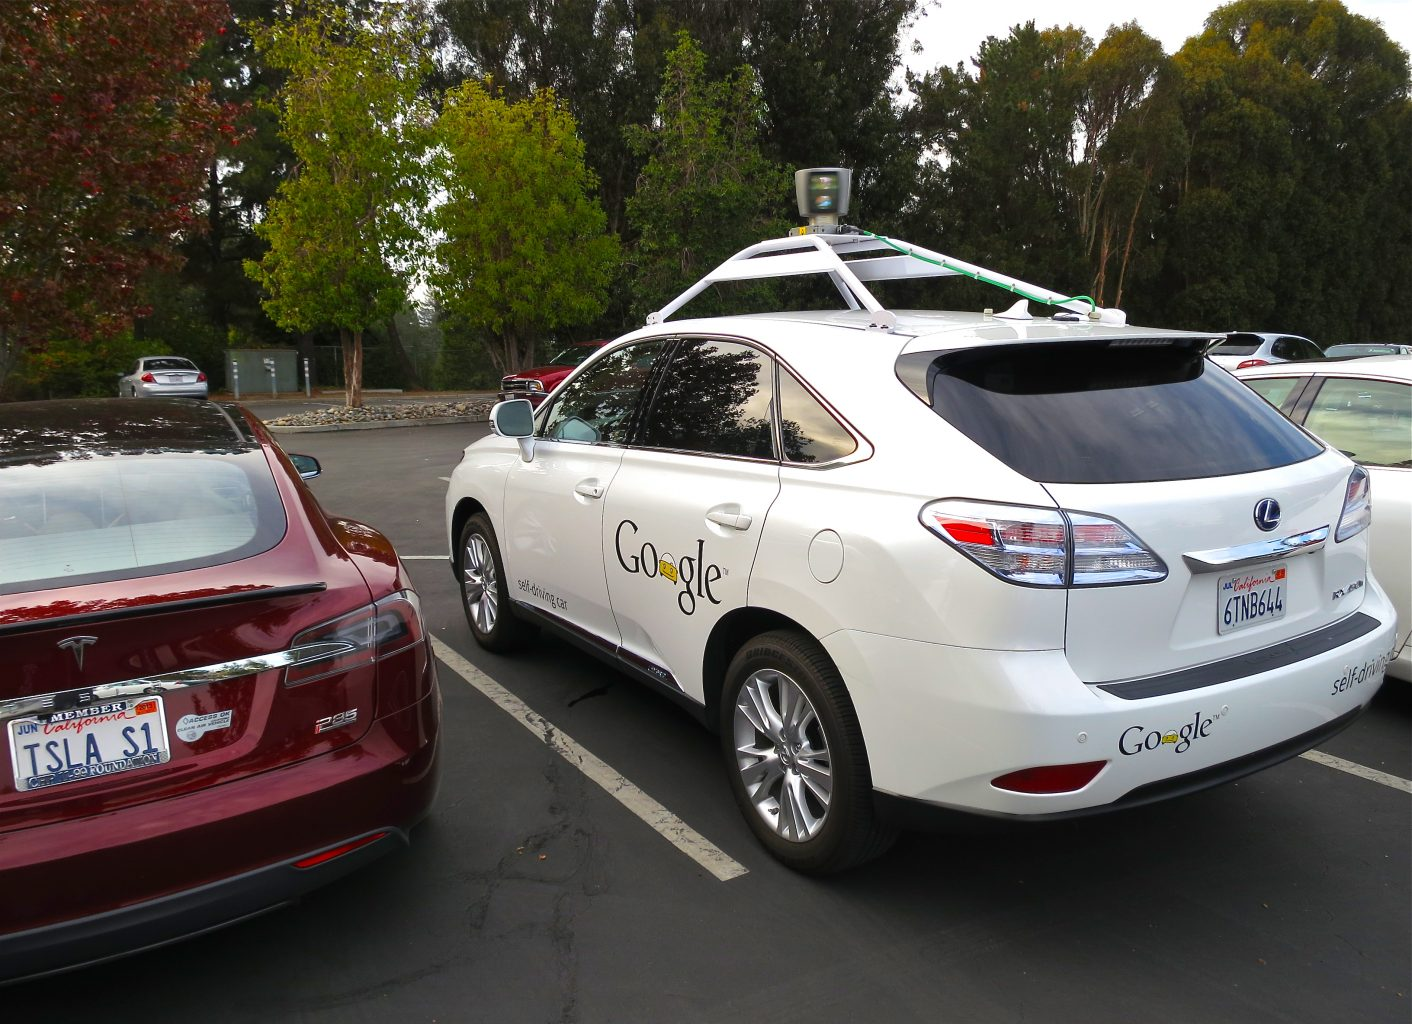 What You Need to Know About Insuring Your Self-Driving Car